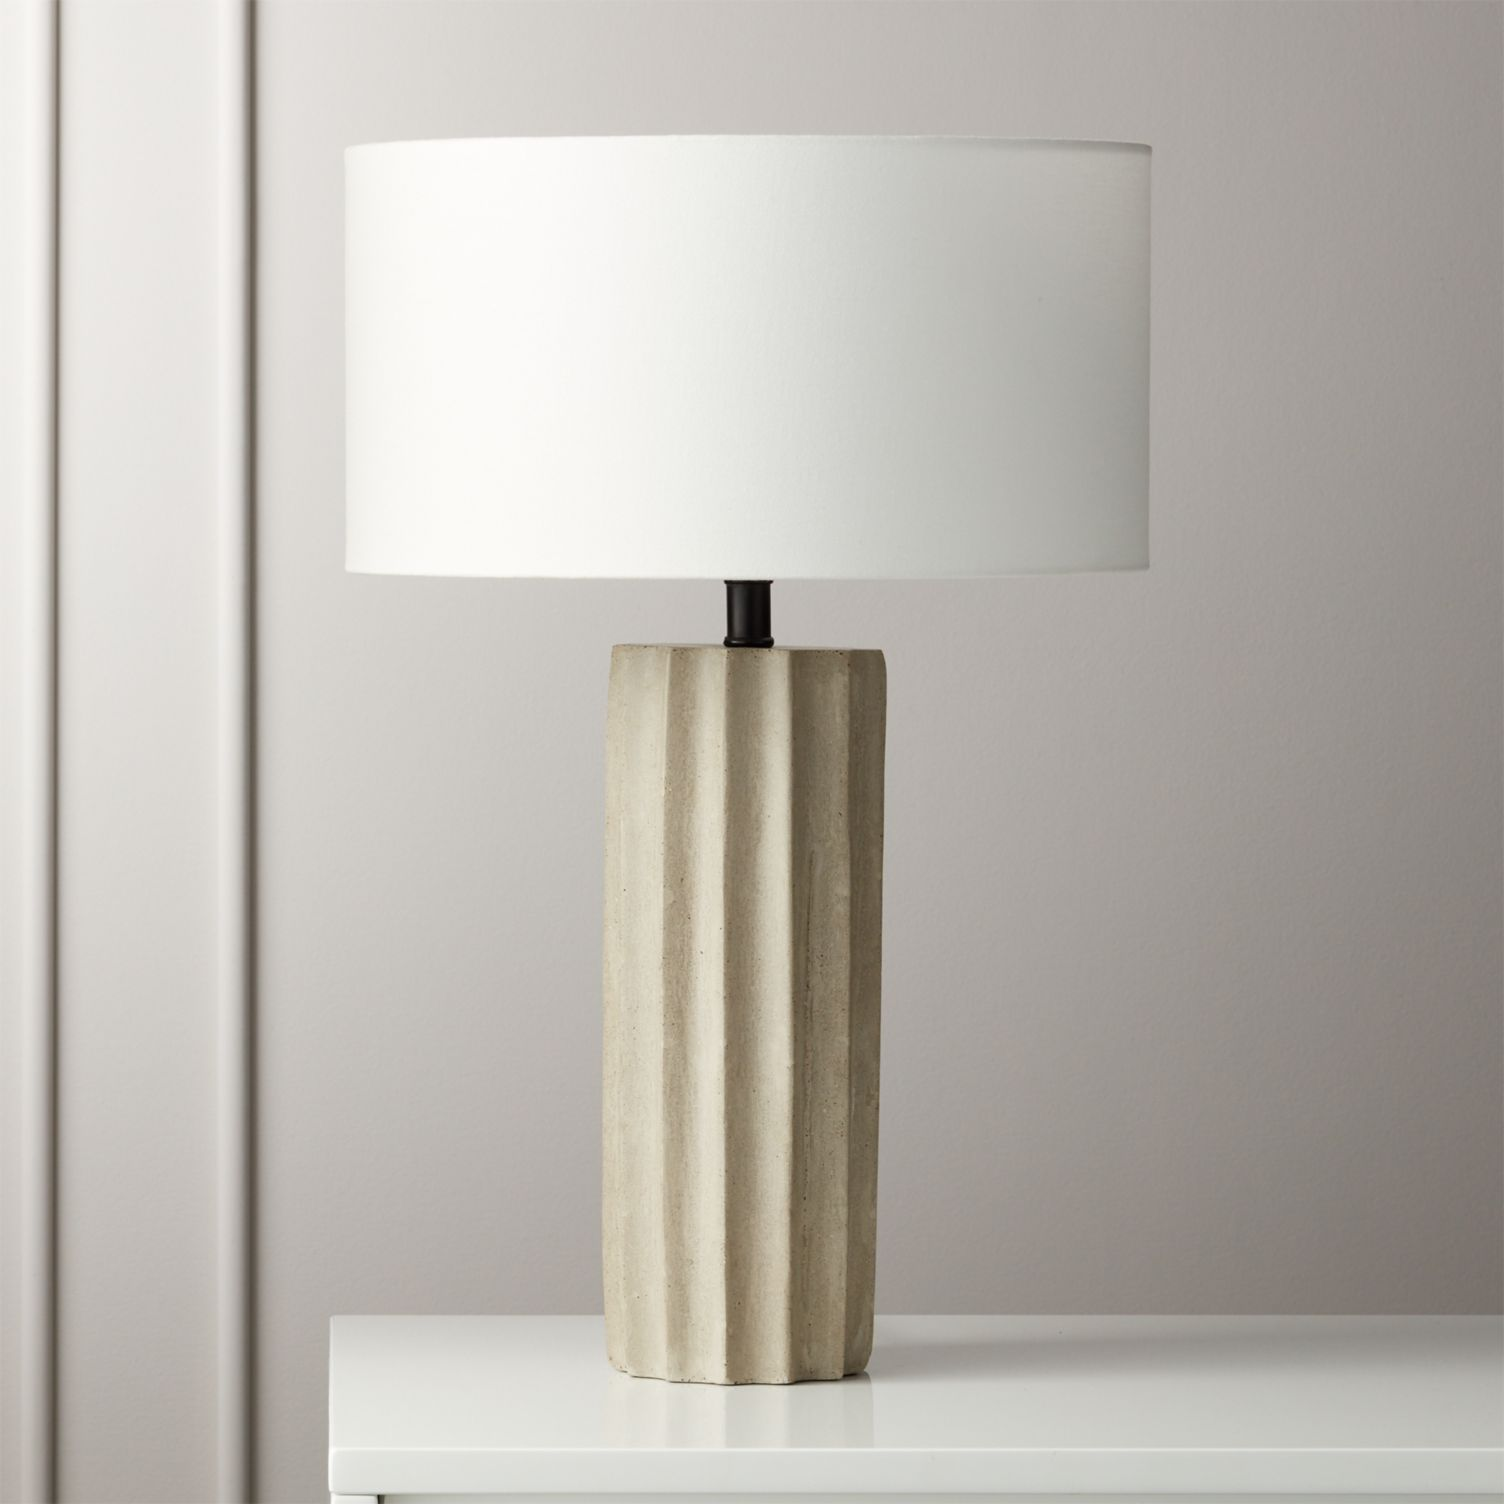 Scallop Concrete Table Lamp